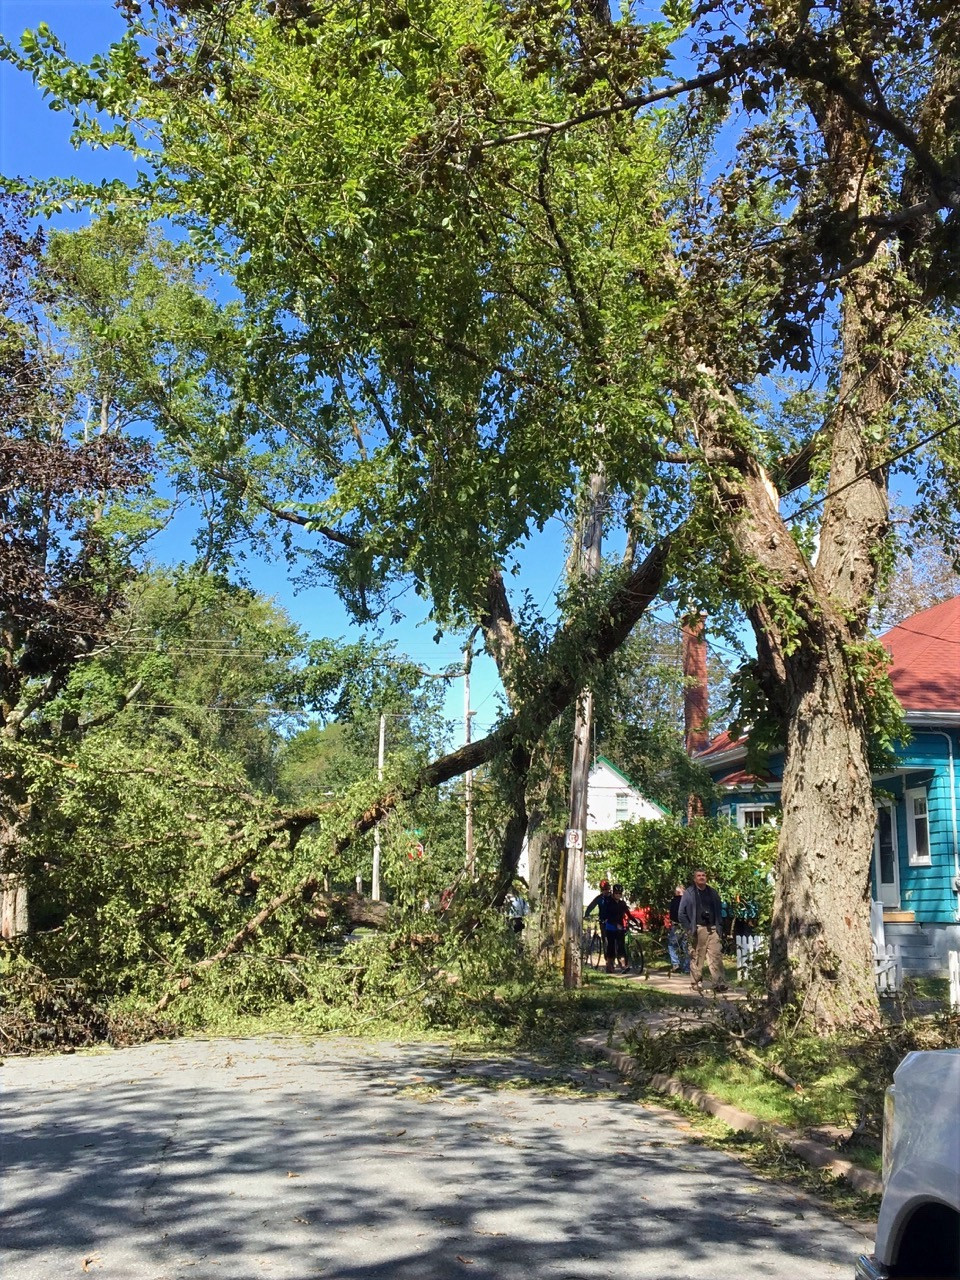 More than 348,000 Nova Scotians were left without power after Hurricane Dorian